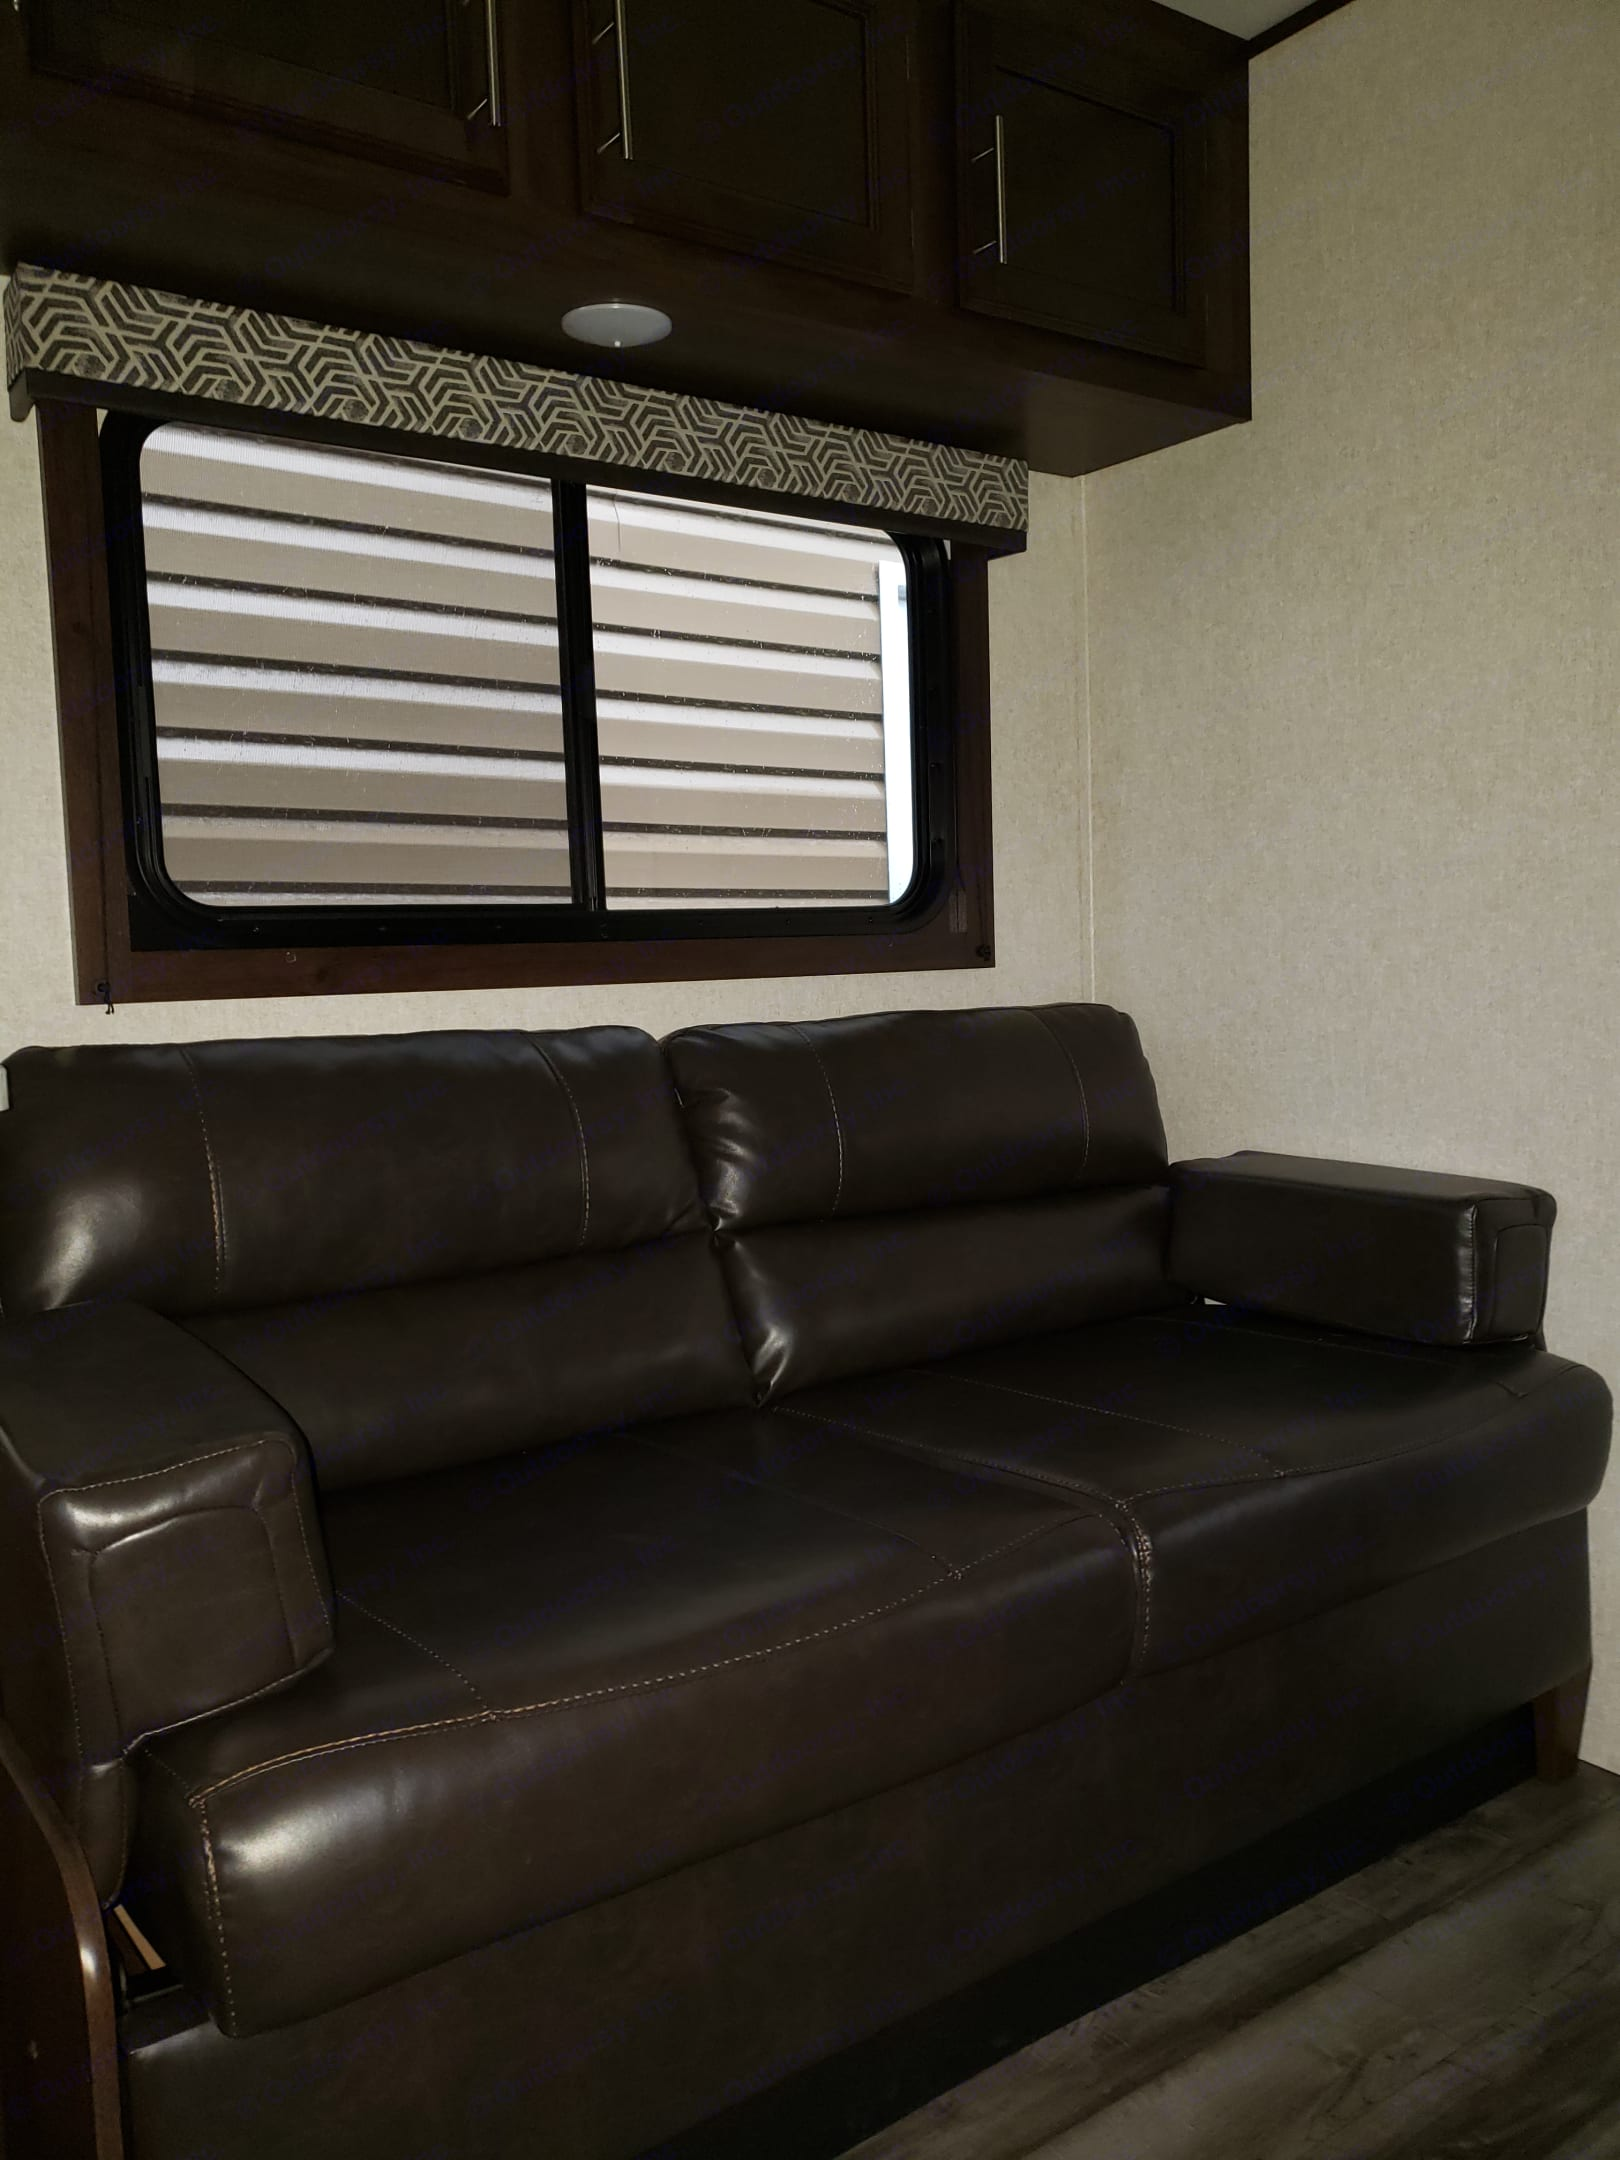 Comfy couch for rainy days with a smart tv, and doubles as an extra bed. Fold out and has extra storage below. . Jayco Flight 2019